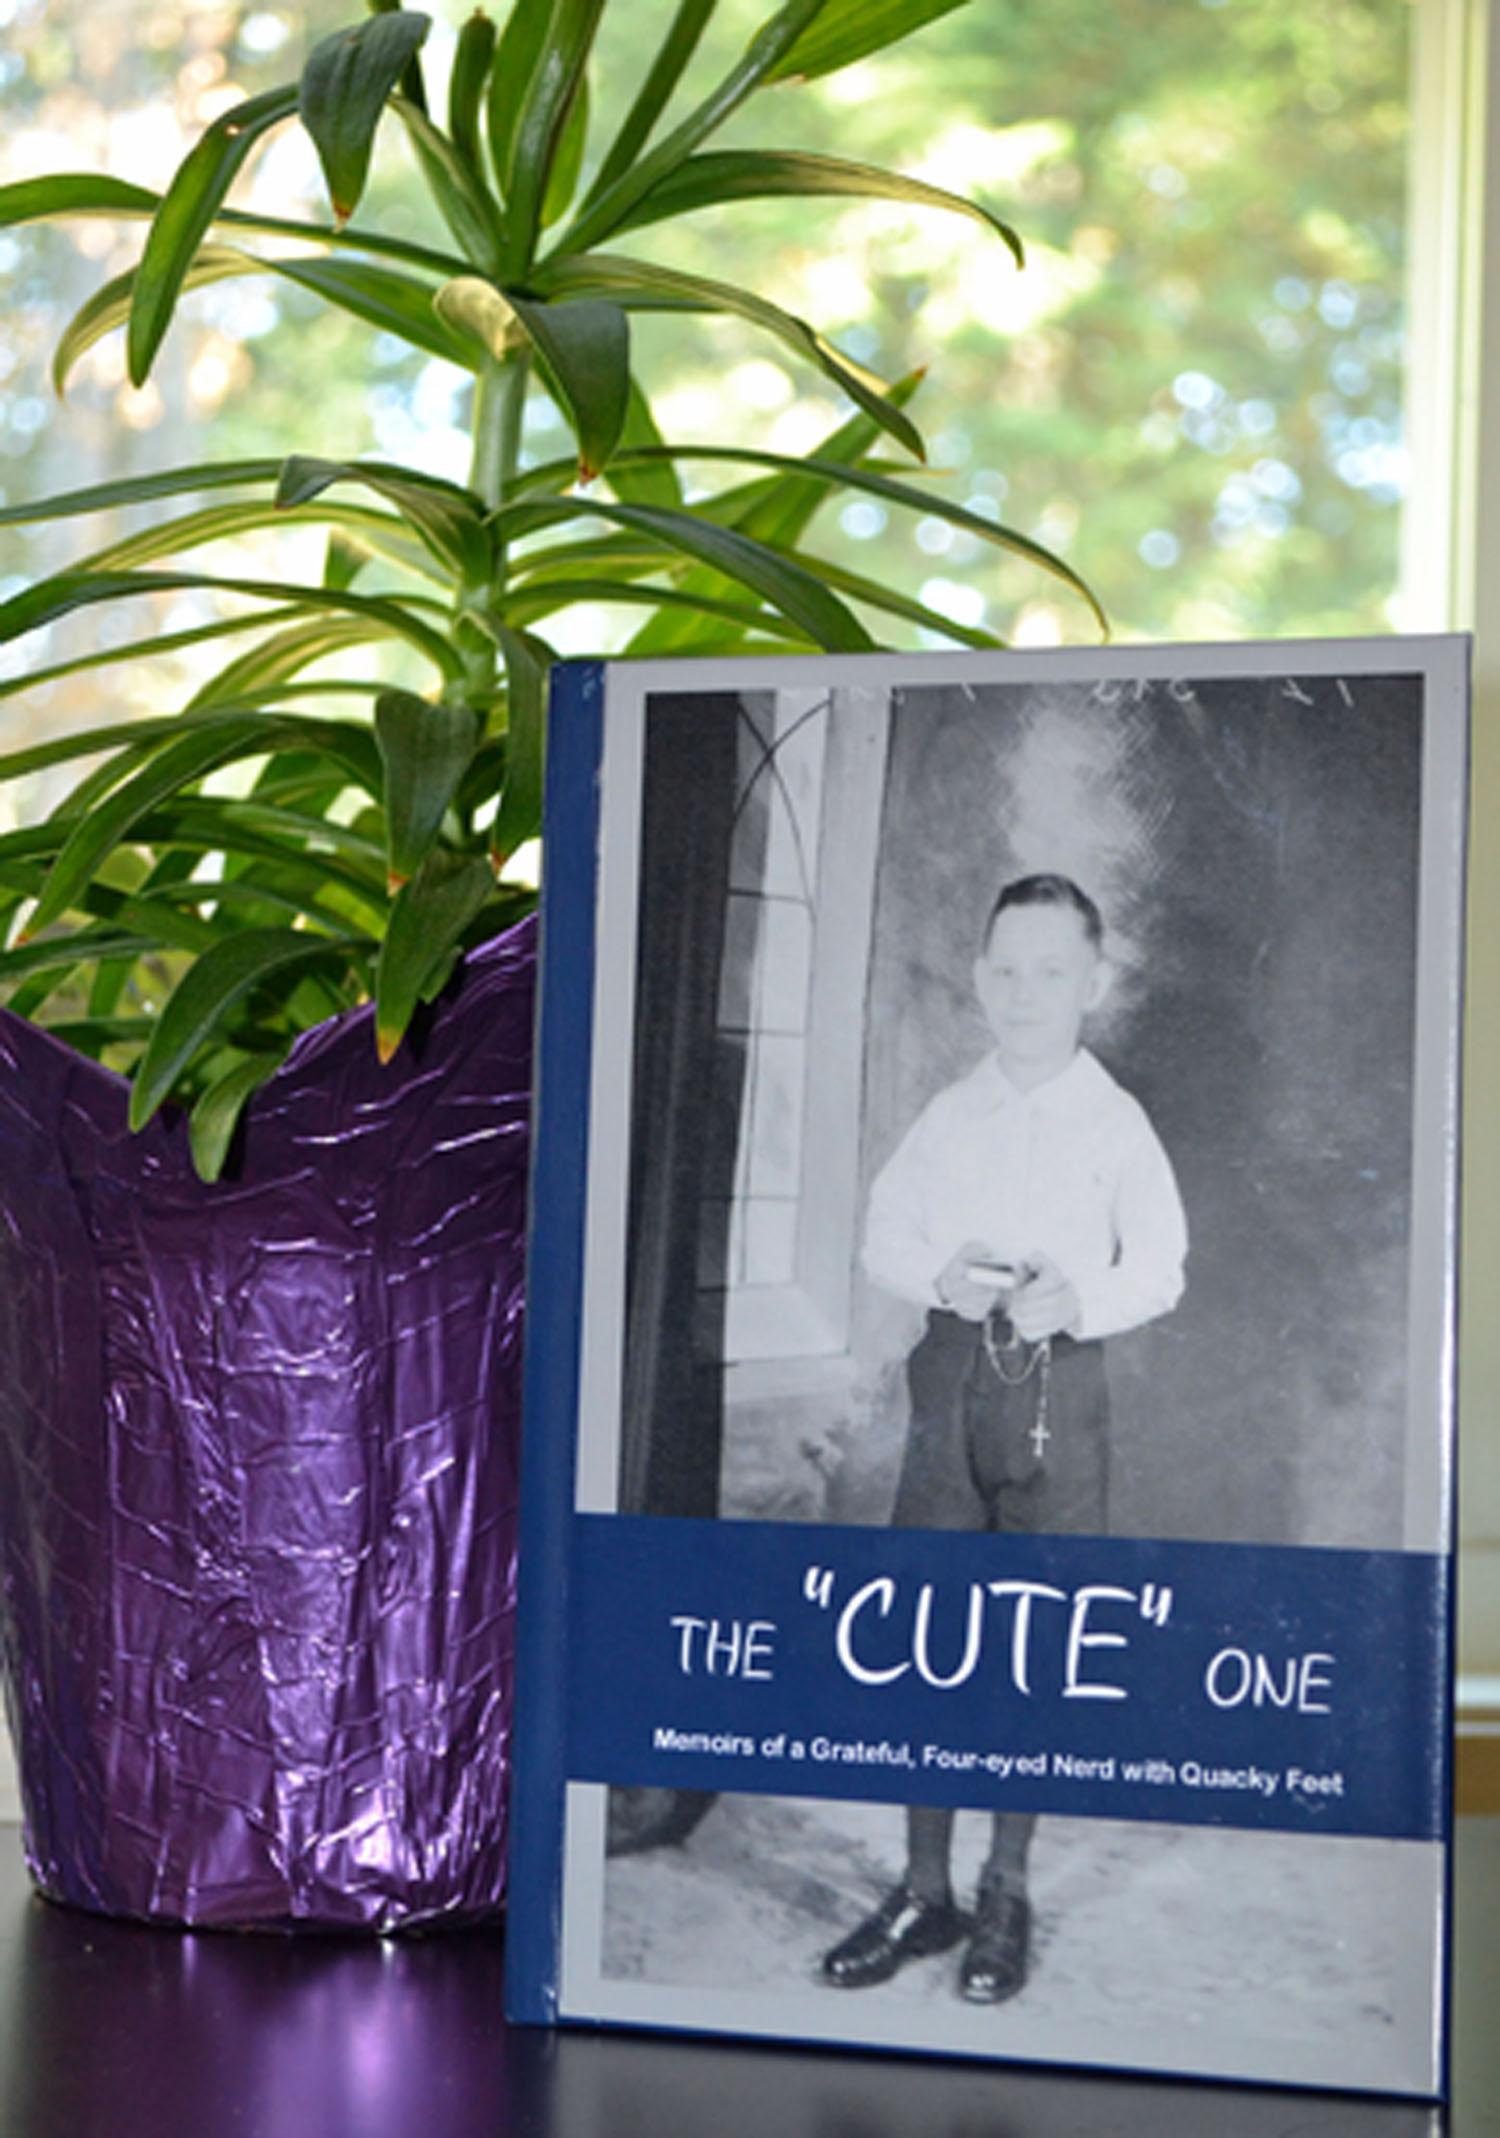 The Cute One book by Alfred J. Ewald